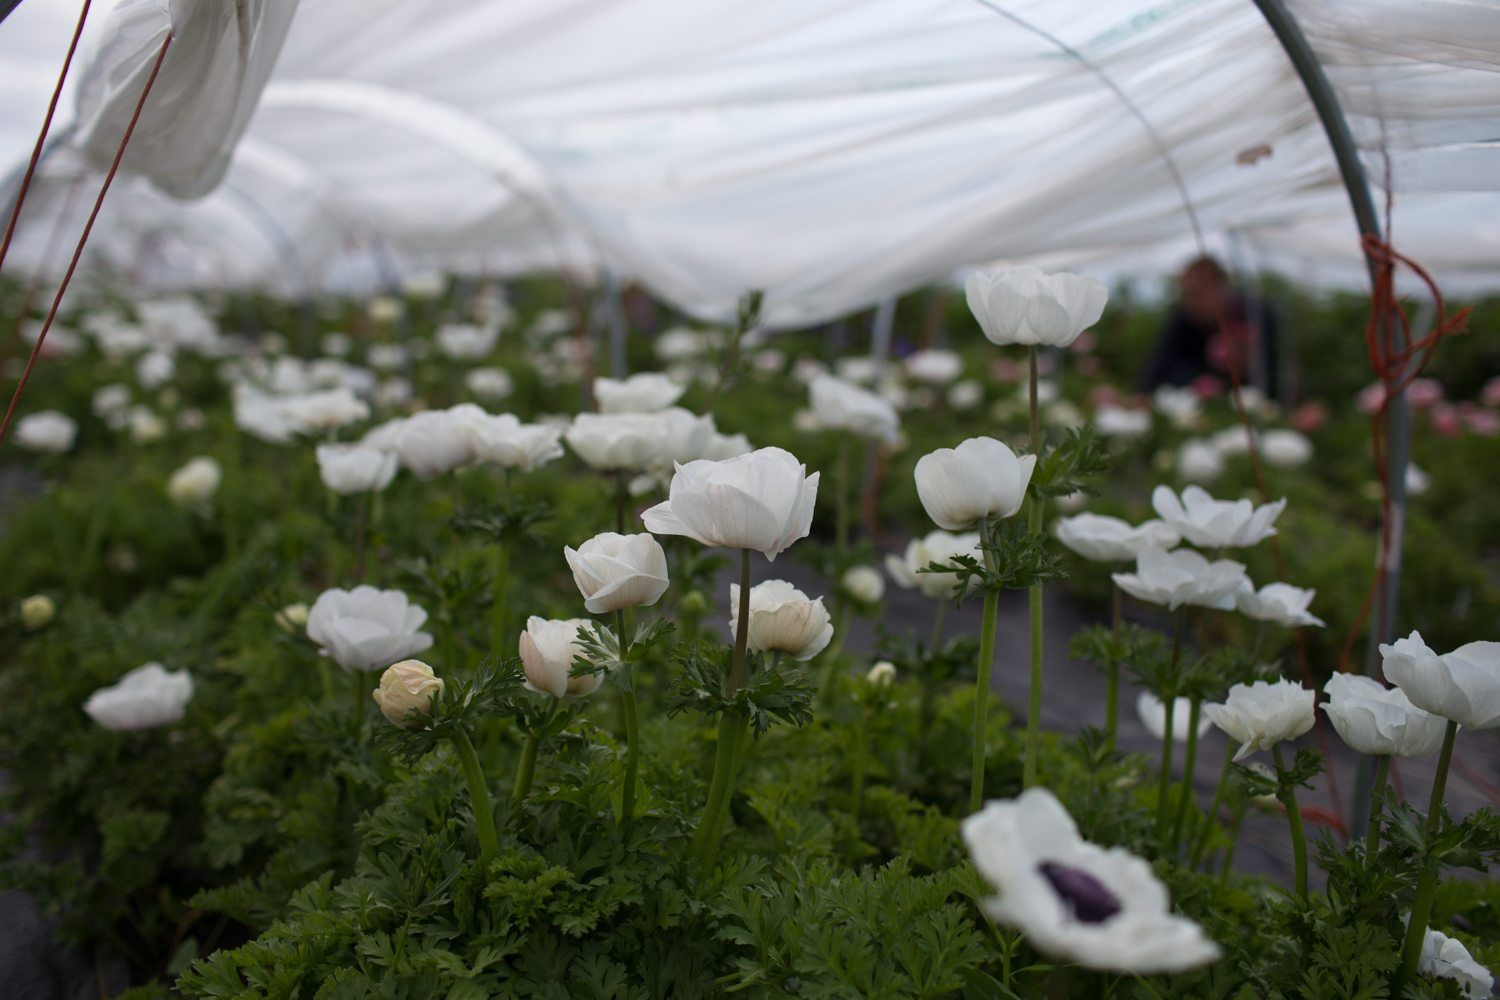 How To Grow Anemones Floret Flowers White Anemone Flower Growing Tulips Anemone Flower